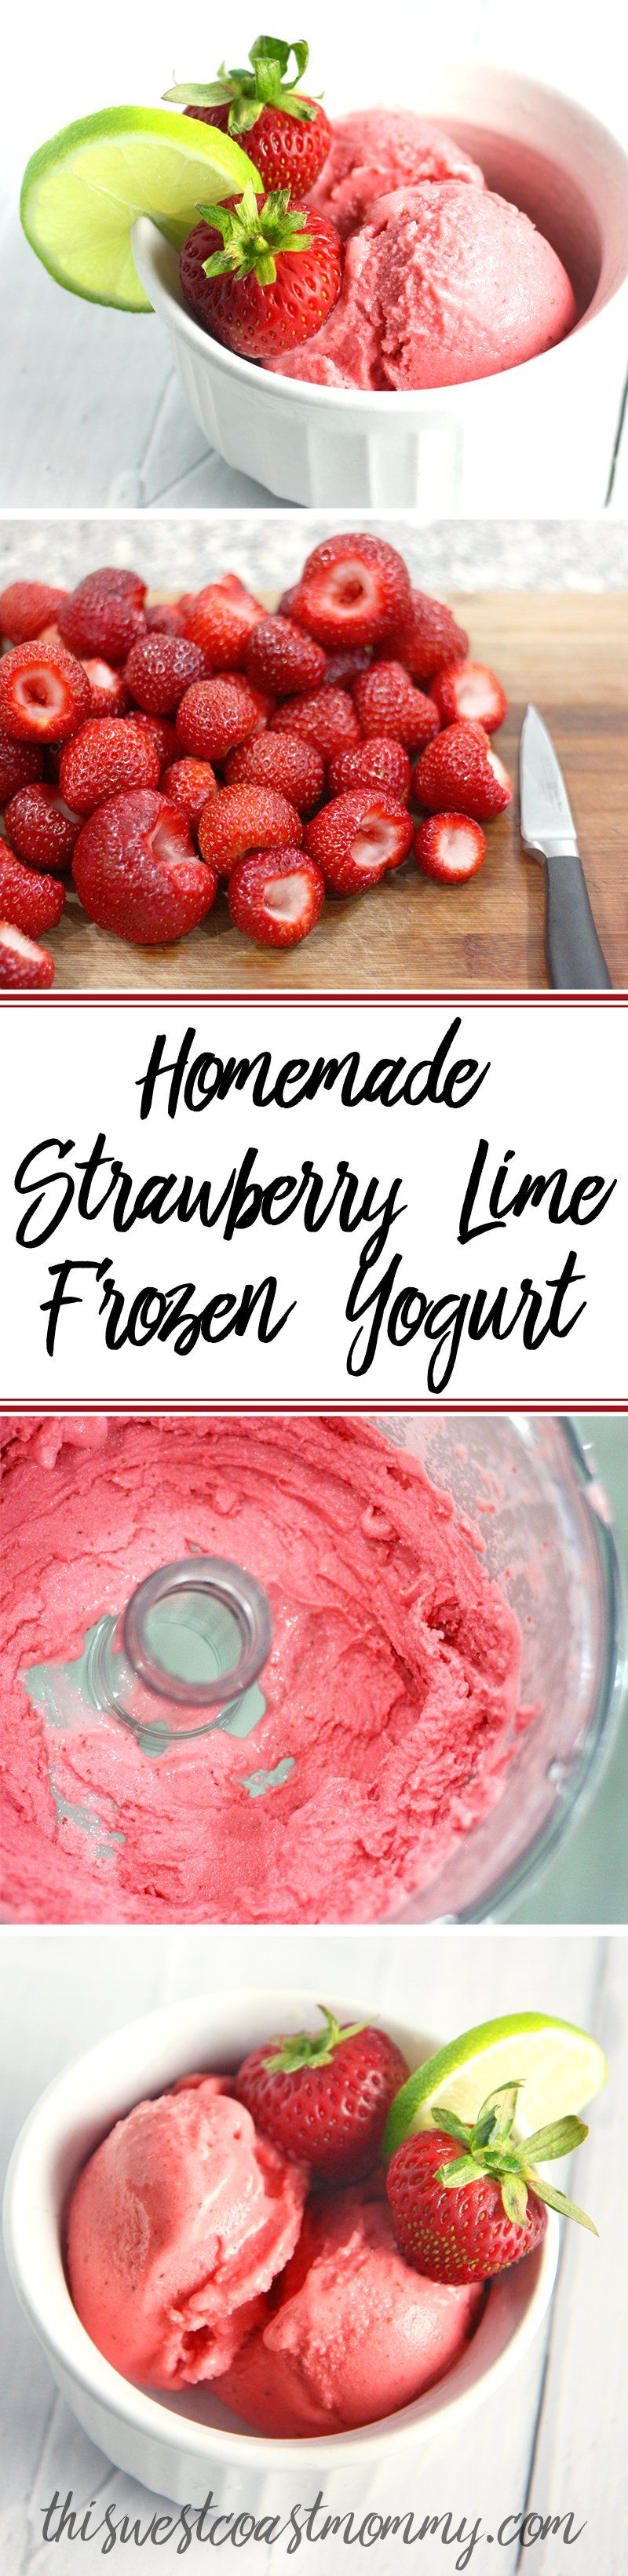 Strawberry Lime Frozen Yogurt Recipe Frozen yogurt